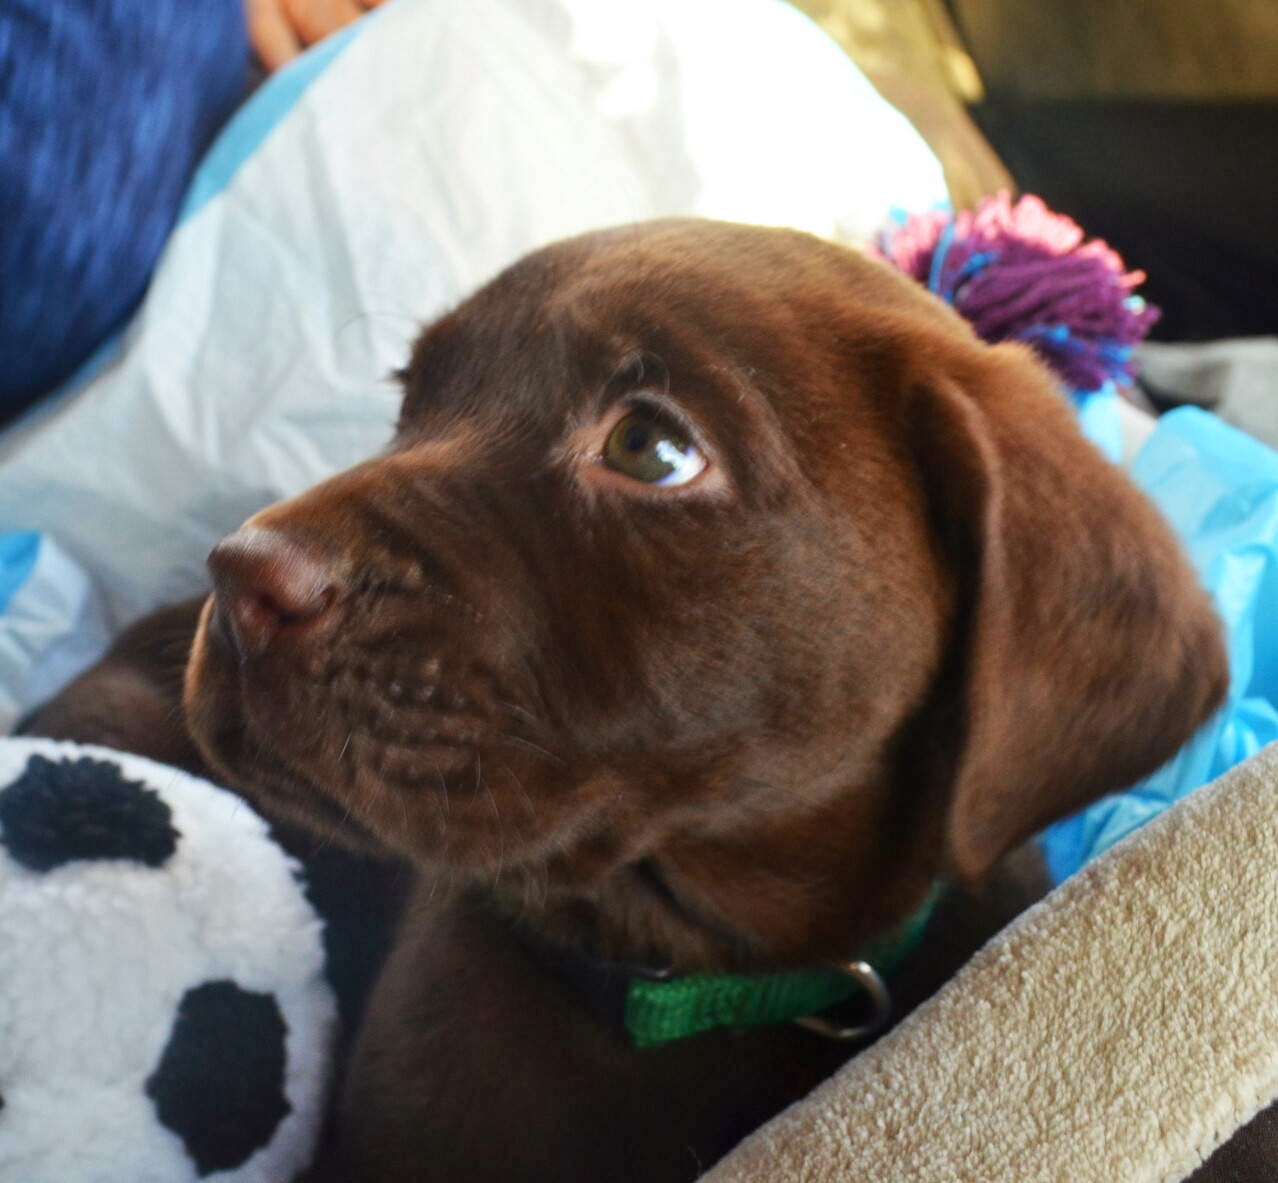 Cute dogs - part 7 (50 pics), adorable brown lab puppy